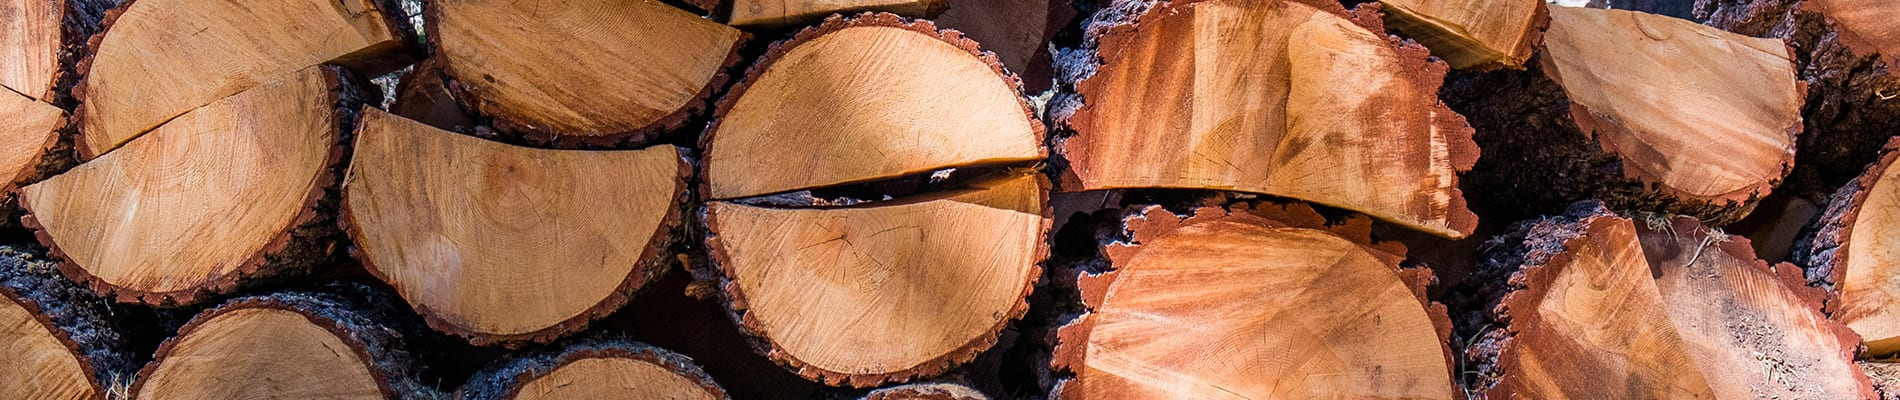 tree removal services west frankfort illinois